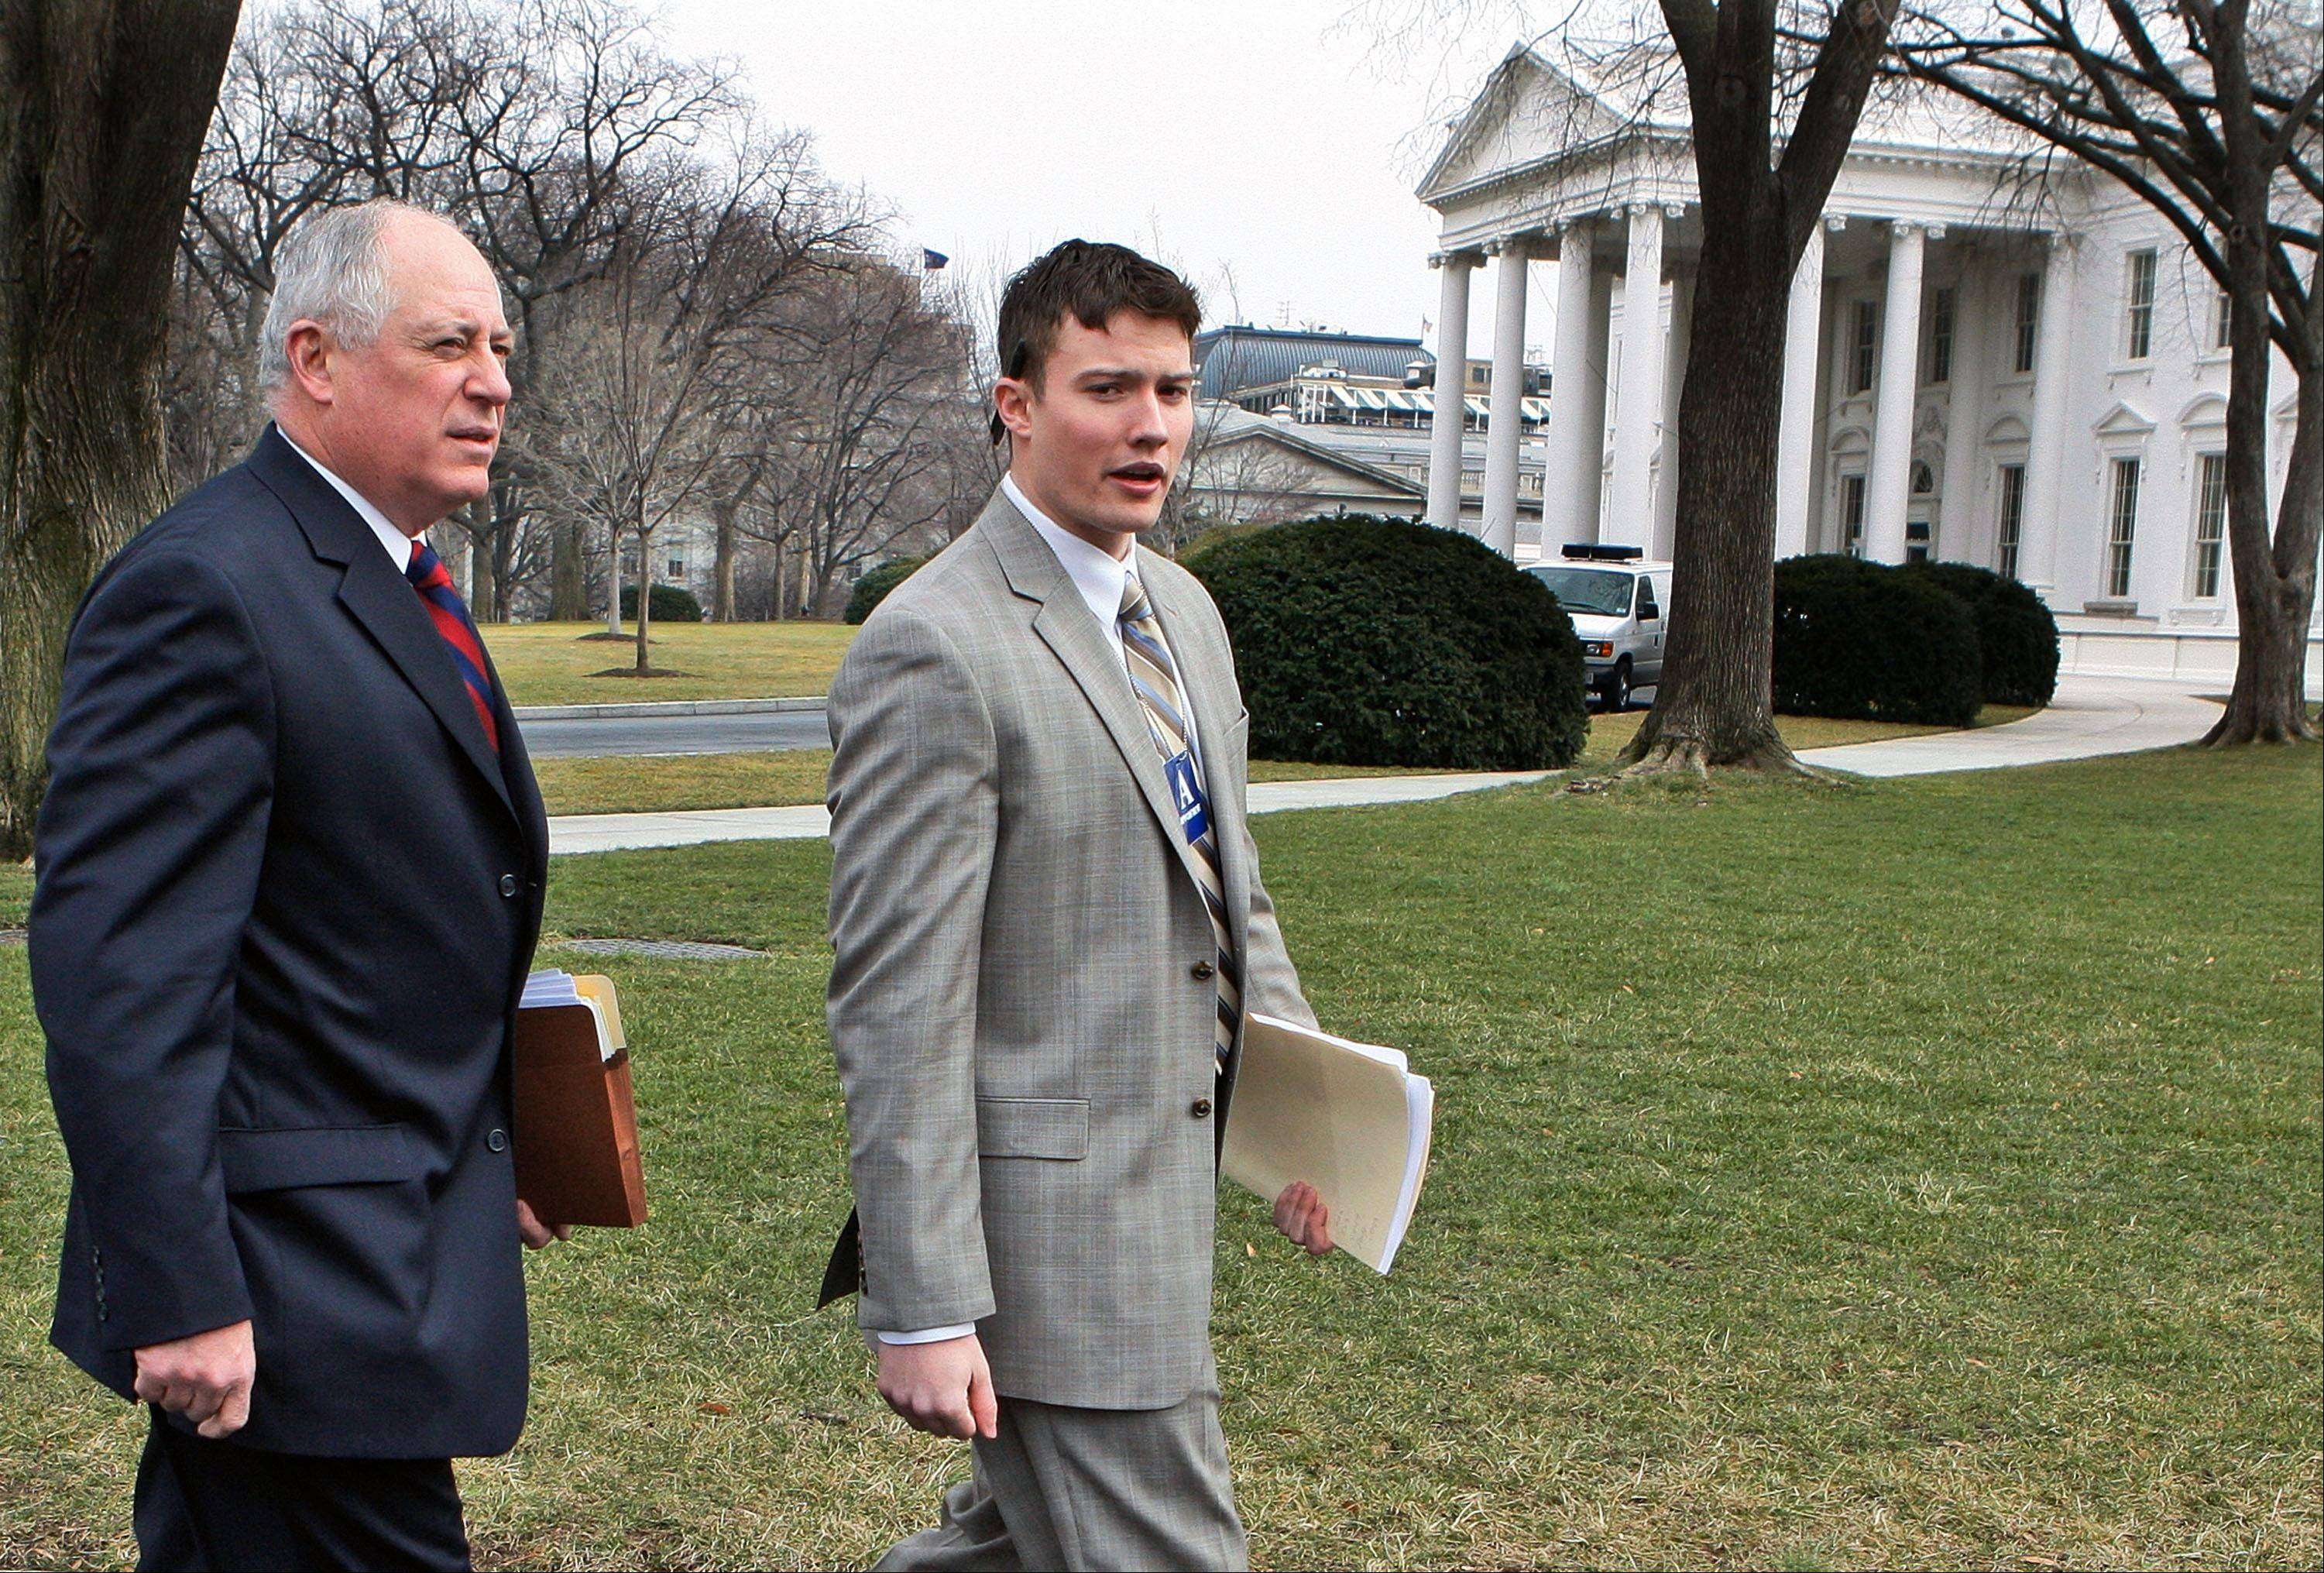 Lou Bertuca, right, seen here in 2009 with Illinois Gov. Pat Quinn, has been named deputy chief of staff at the Illinois State Toll Highway Authority.